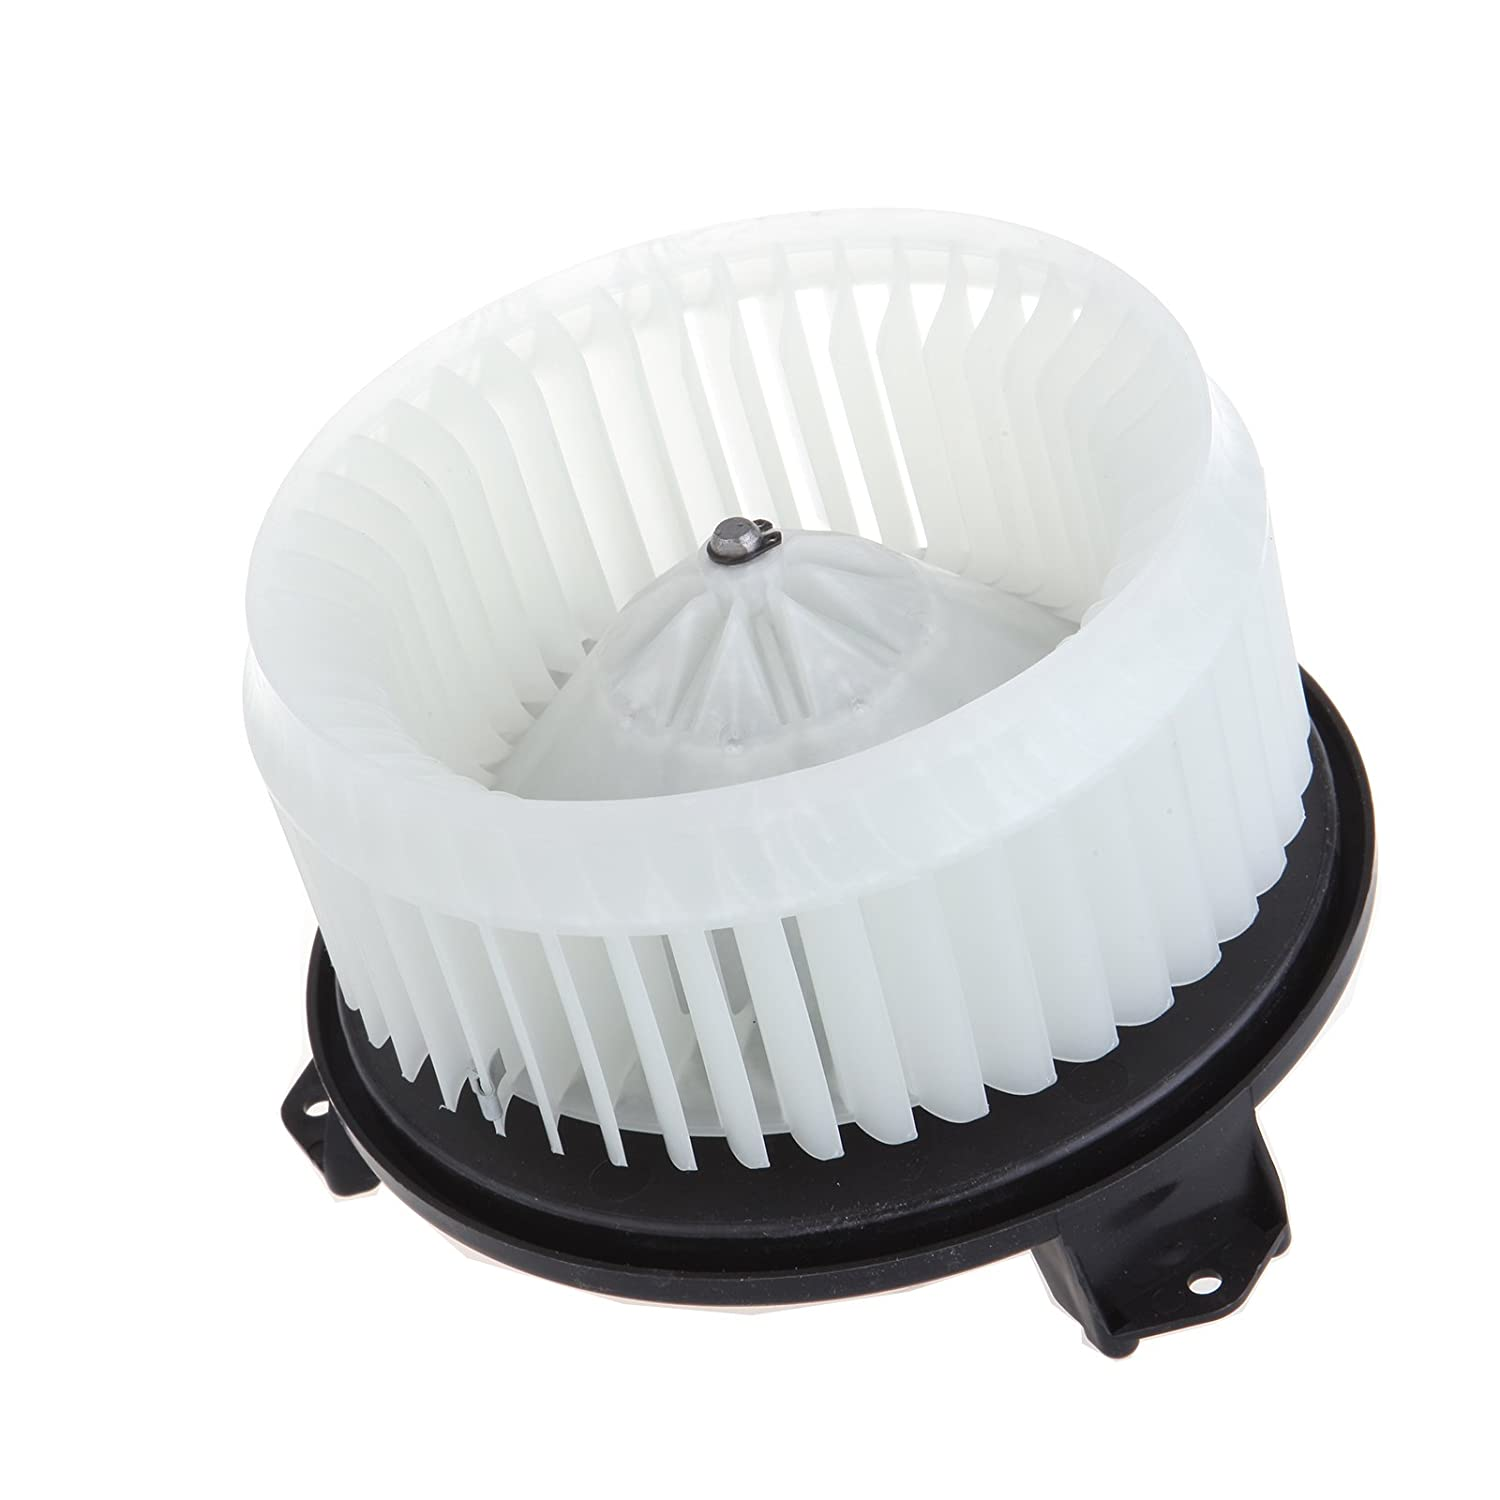 Scitoo ABS plastic Heater Blower Motor w/Fan HVAC Resistors Blowers Motors fit 2007-13 Acura MDX/2007-12 Acura RDX/2009-13 Acura TL/2009-13 Acura TSX/2006-11 Buick Lucerne 058386-5206-1507521